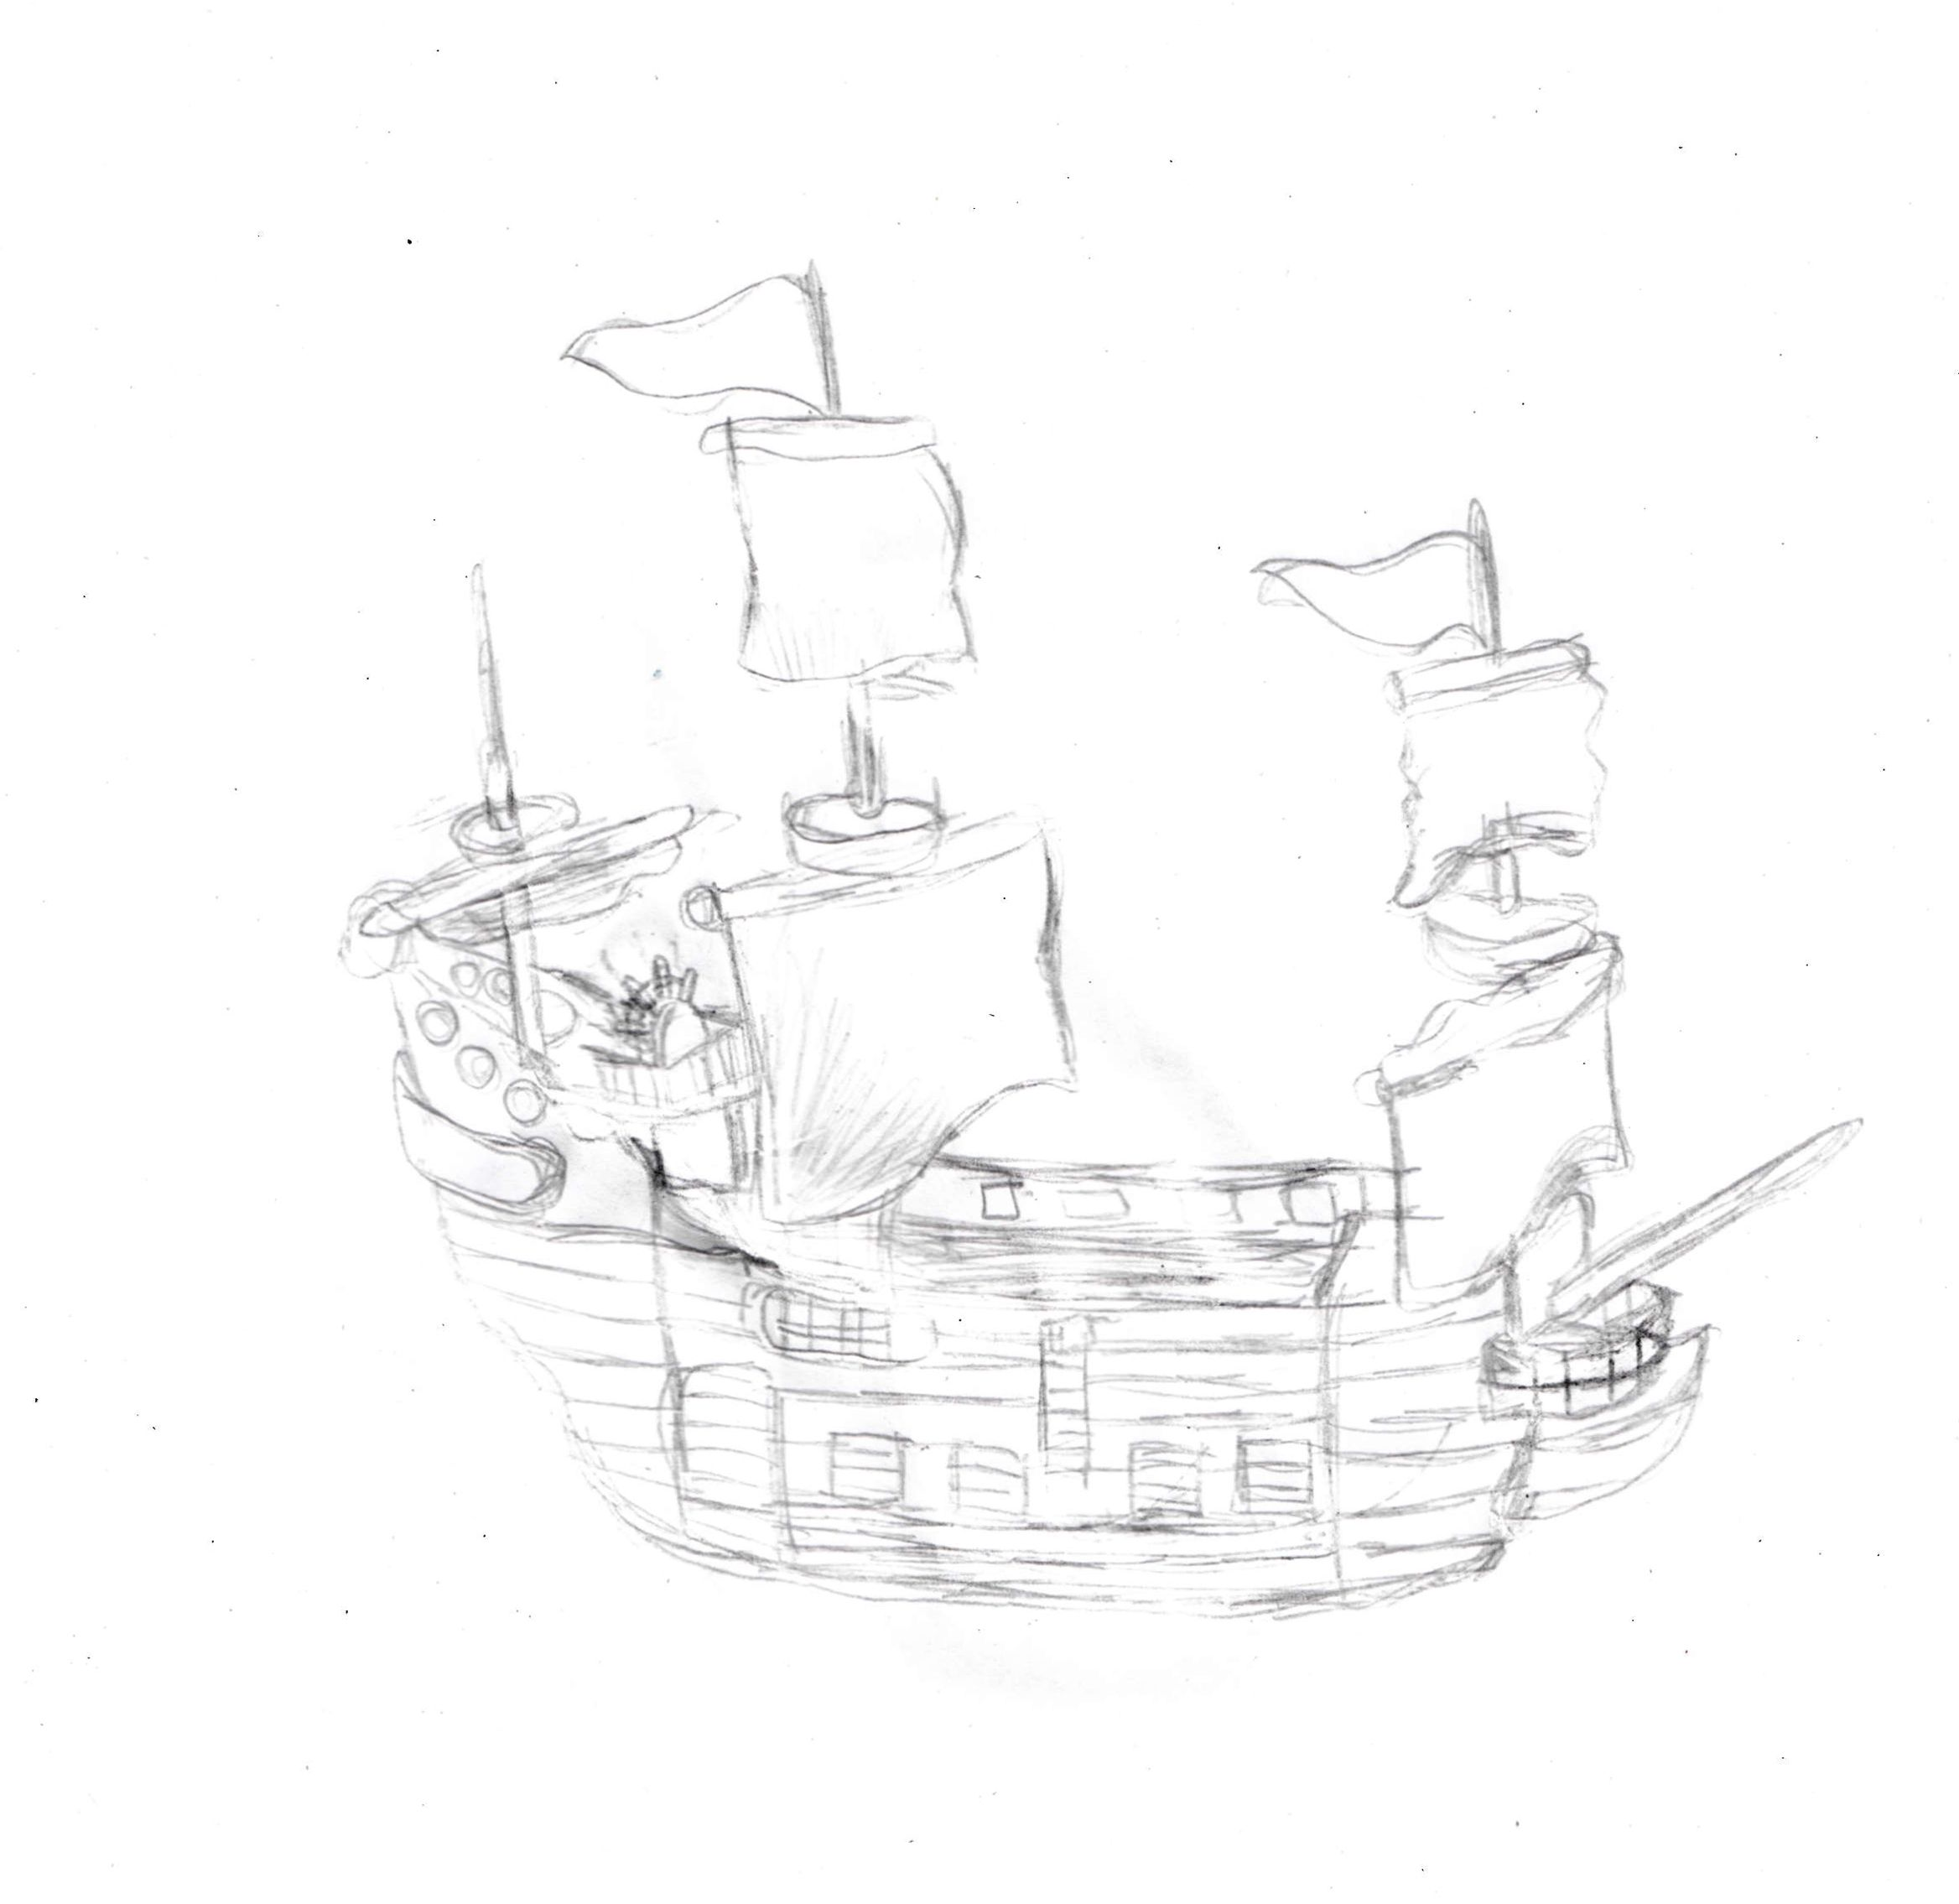 draw a ship step by step a pirate ship illustration on paper drawing tutorials a ship draw step step by